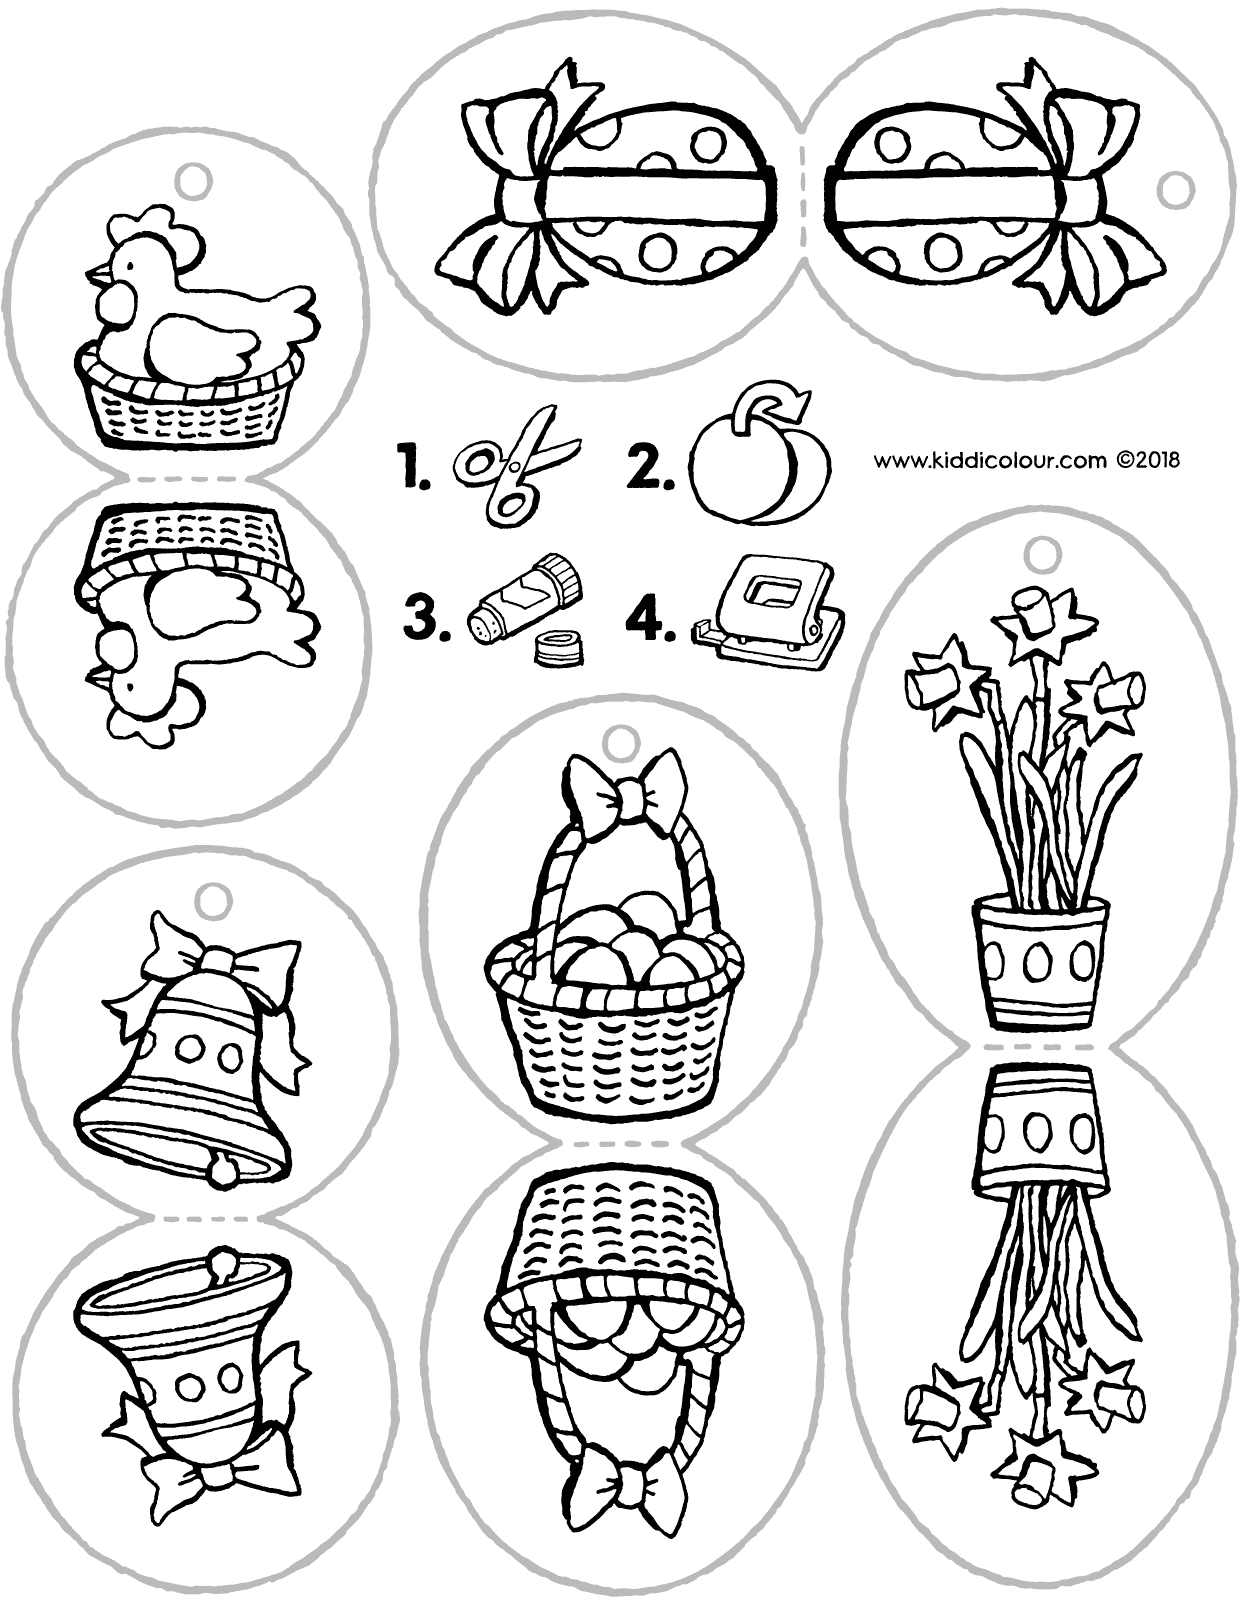 crafting decorations for the Easter tree colouring page drawing picture 01V